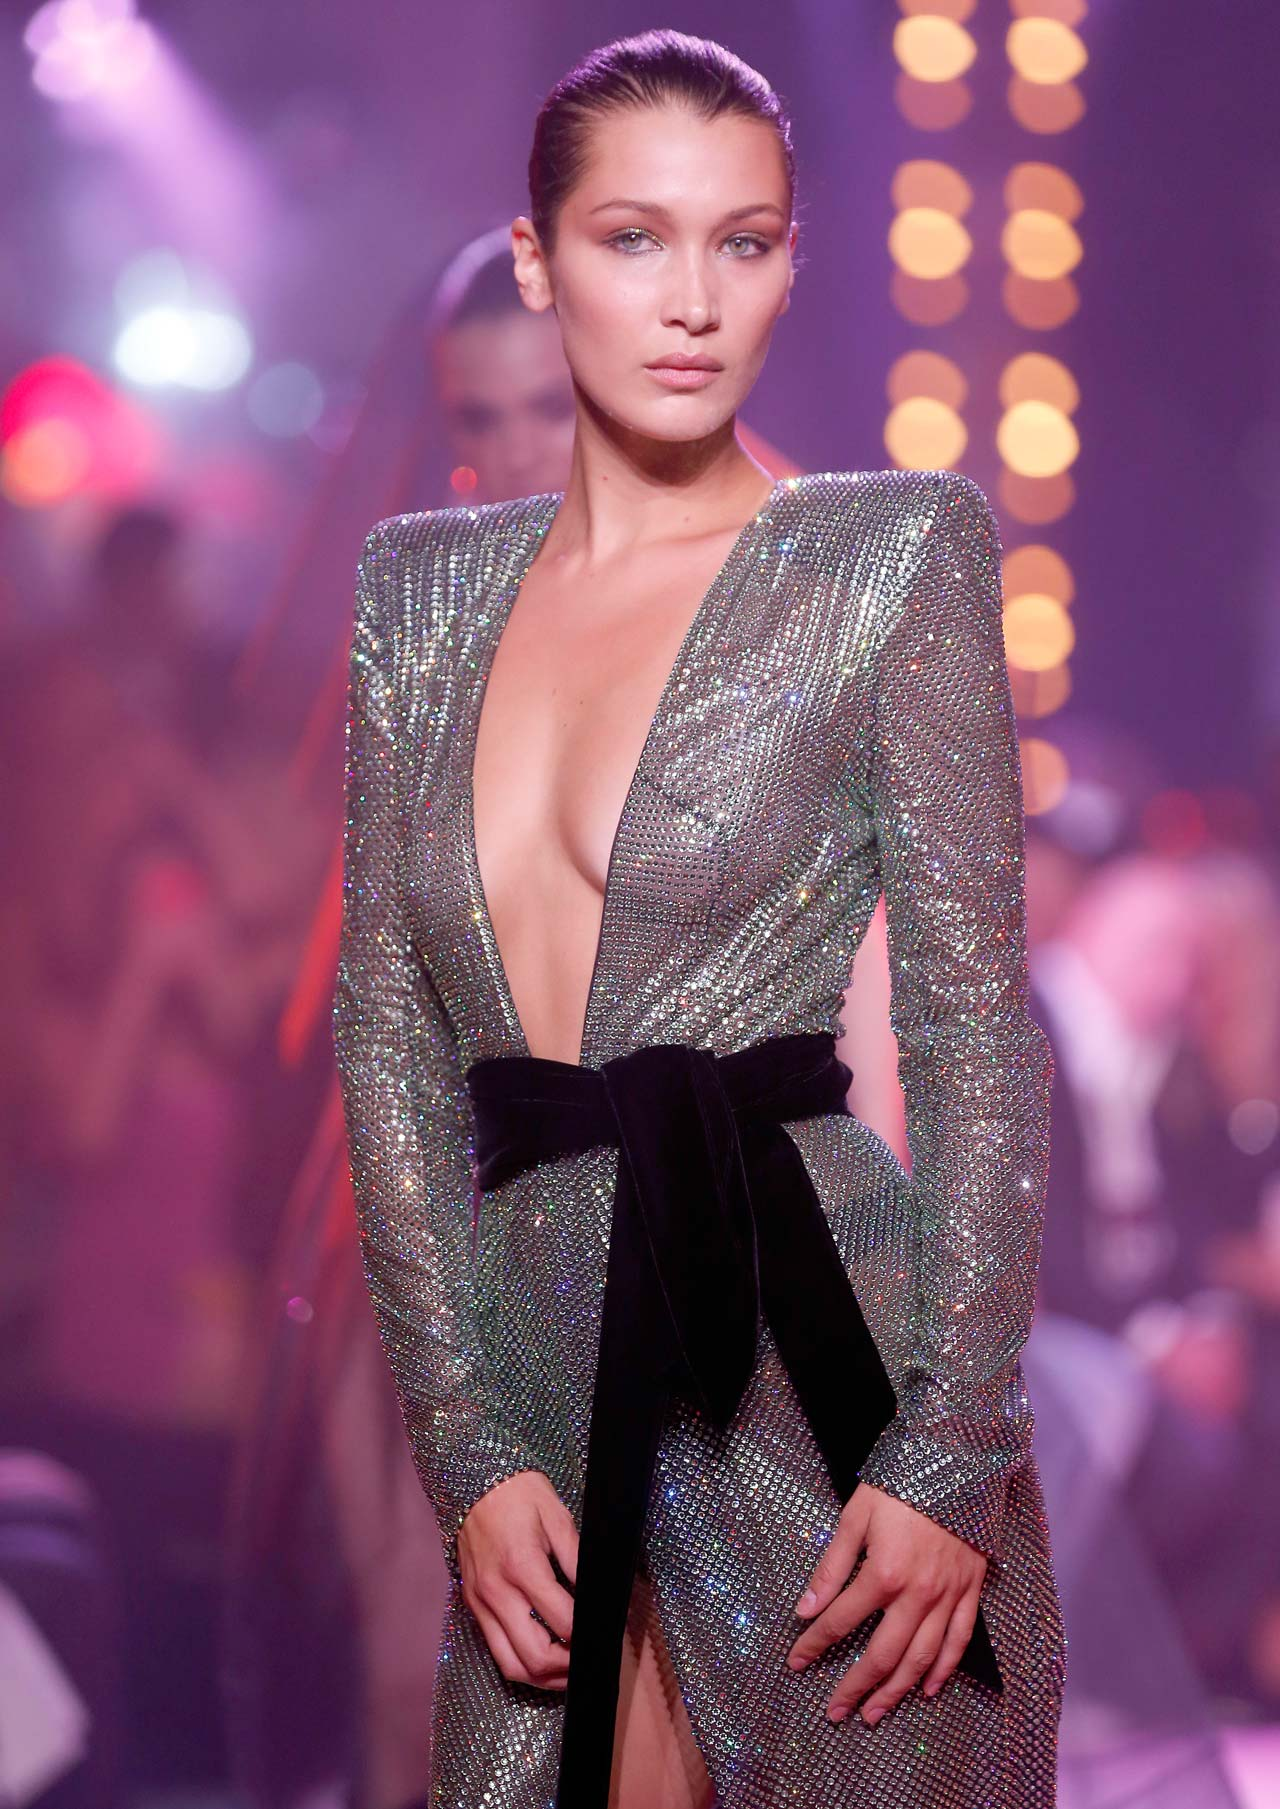 PARIS, FRANCE - JULY 04:  US model  Bella Hadid walks the runway during the Alexander Vauthier Haute Couture Fall/Winter 2017-2018 show as part of Haute Couture Paris Fashion Week on July 4, 2017 in Paris, France.  (Photo by Thierry Chesnot/Getty Images)